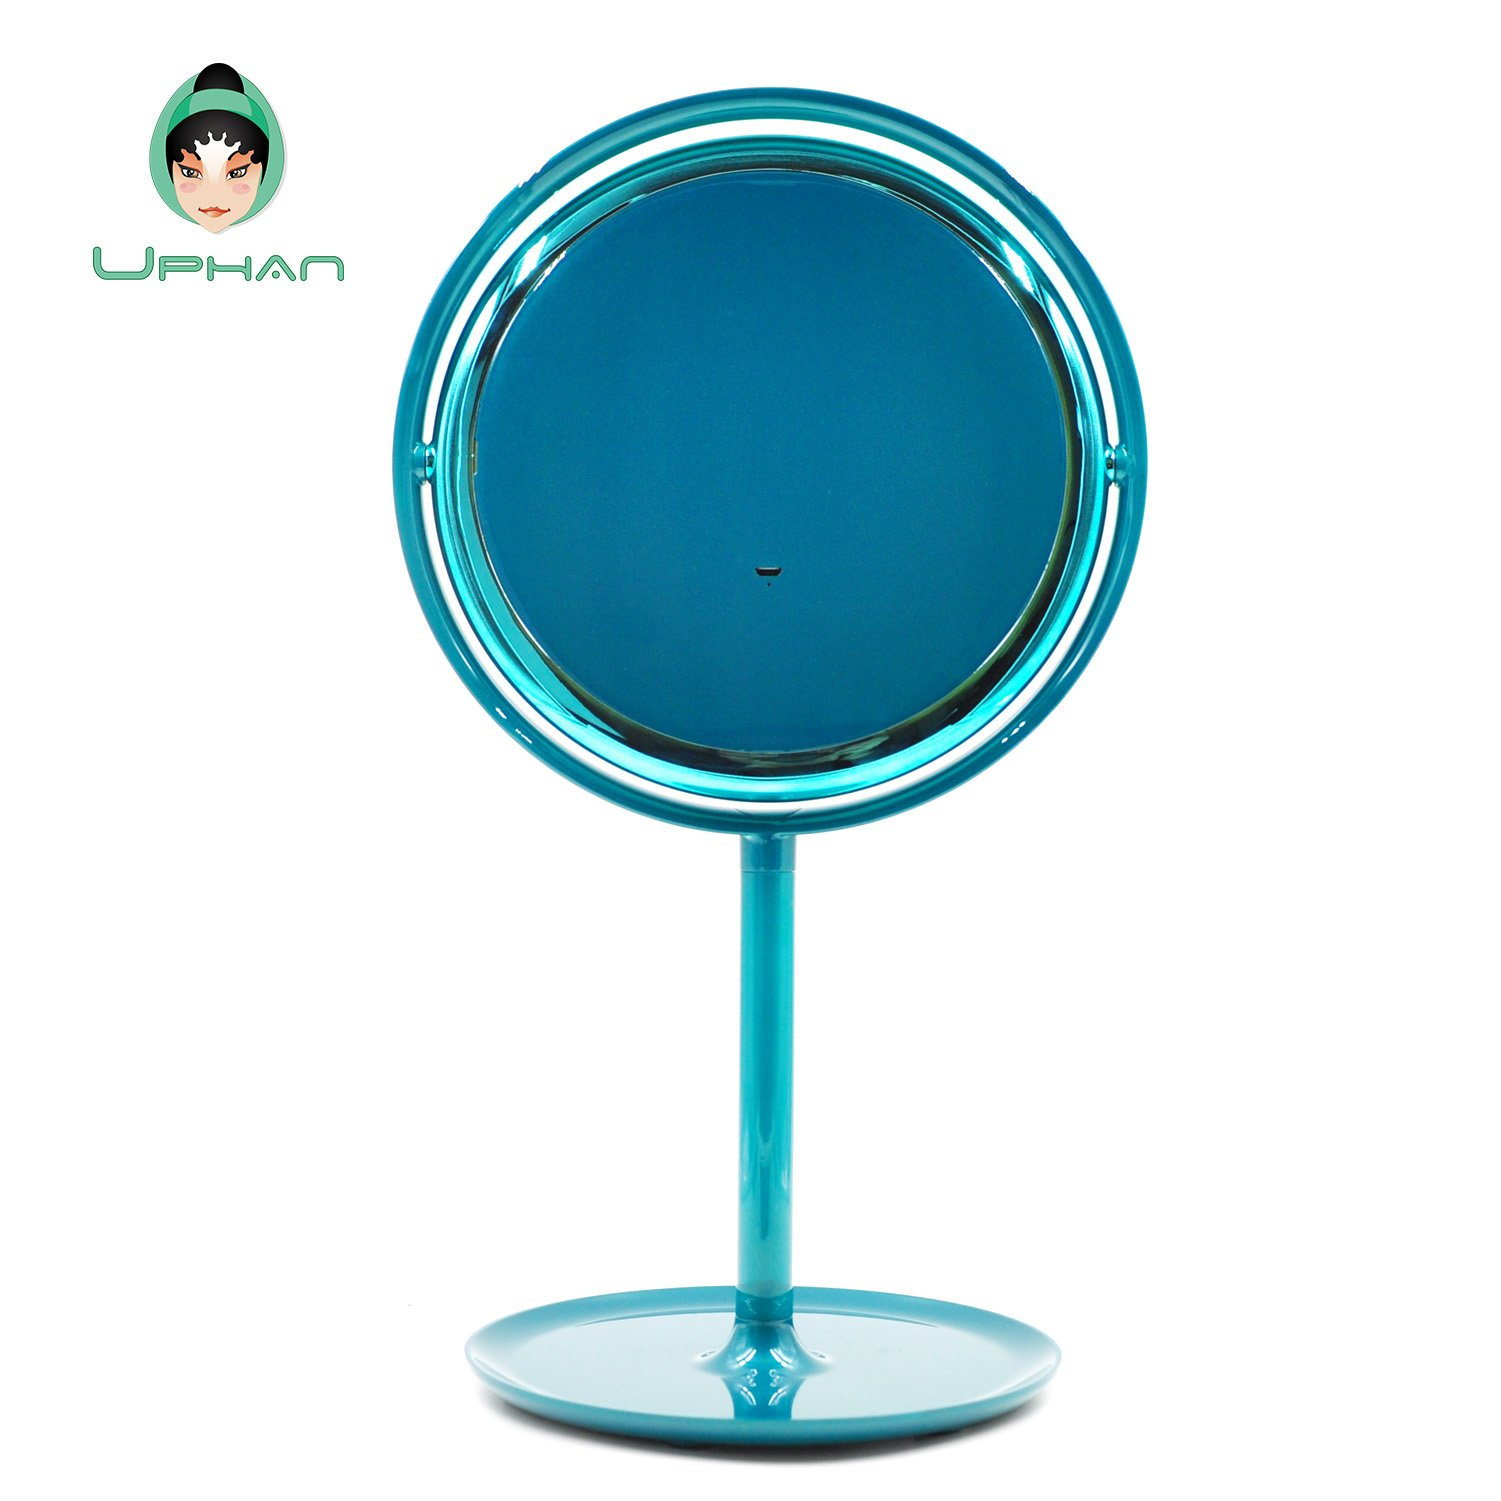 UPHAN U7 Surgical Grade Lighted Makeup Mirrors, 7 inch Luxury Dual Light Color Dimming Light with 5X Detail Mirror, Malachite green ¡­ (Surgical Grade) by UPHAN (Image #5)